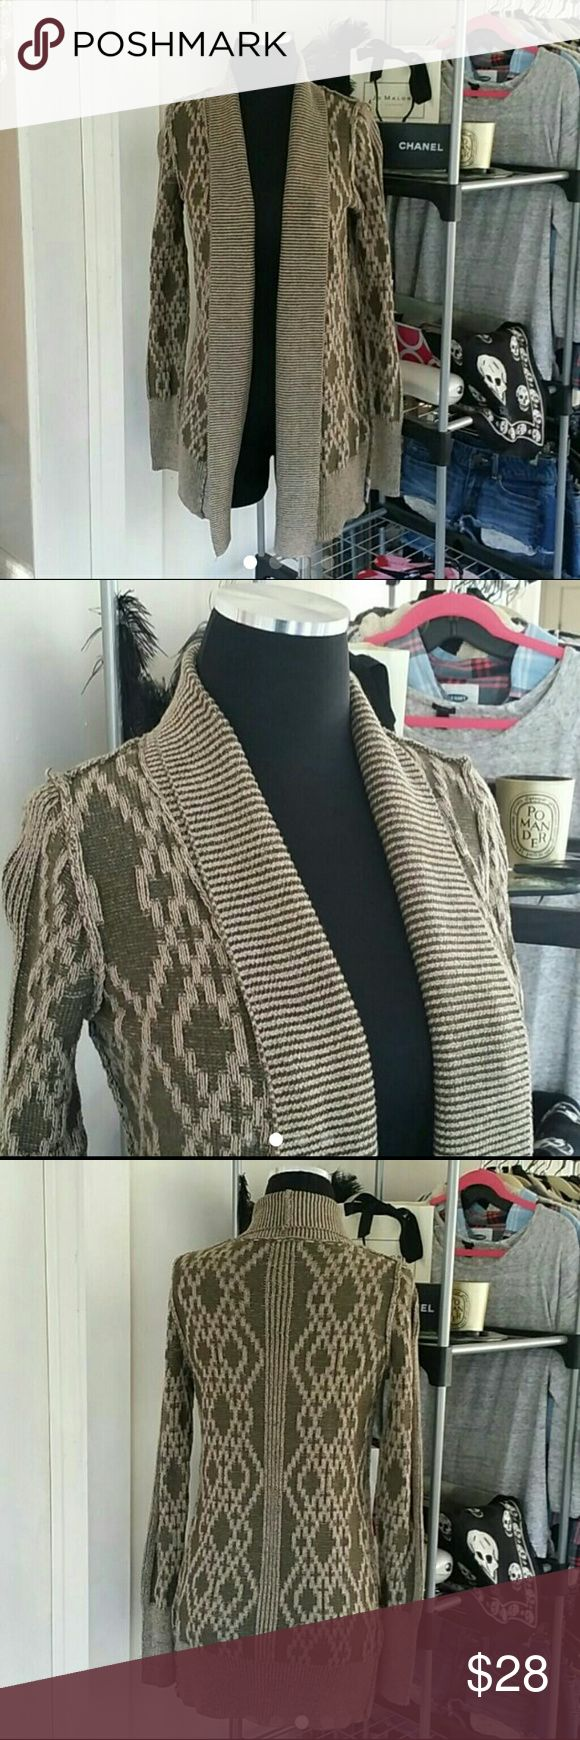 KAISELY ANTHROPOLOGIE CARDIGAN SZ M Kaisely Anthropologie Aztec / Tribal Cardigan Size Medium. Material is 60 % Cotton & 40 % Acrylic. Anthropologie Sweaters Cardigans